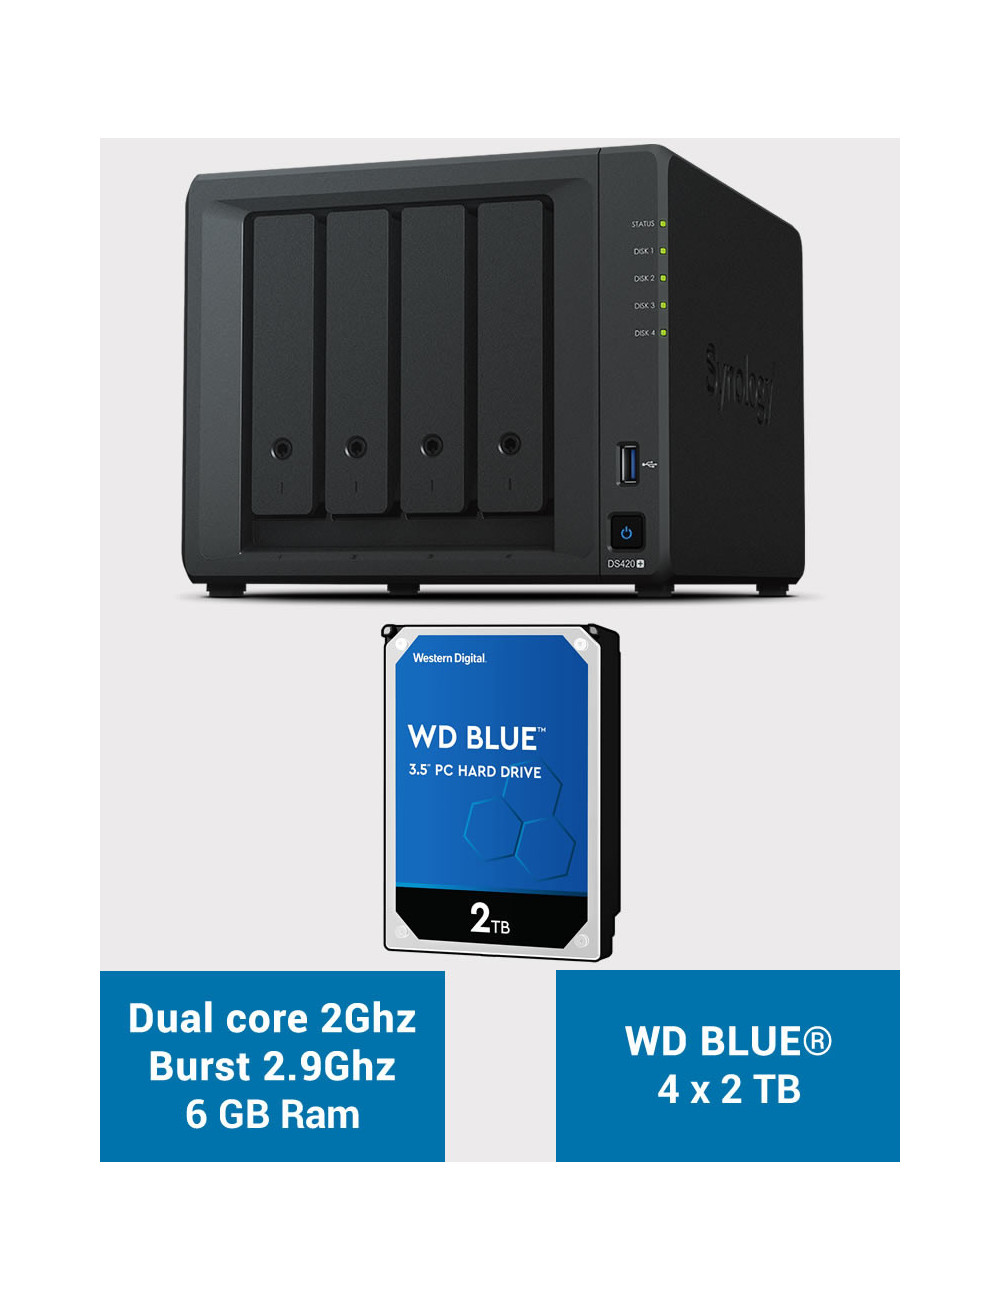 Synology DS420+ 6Go Serveur NAS WD BLUE 8To (4x2To)